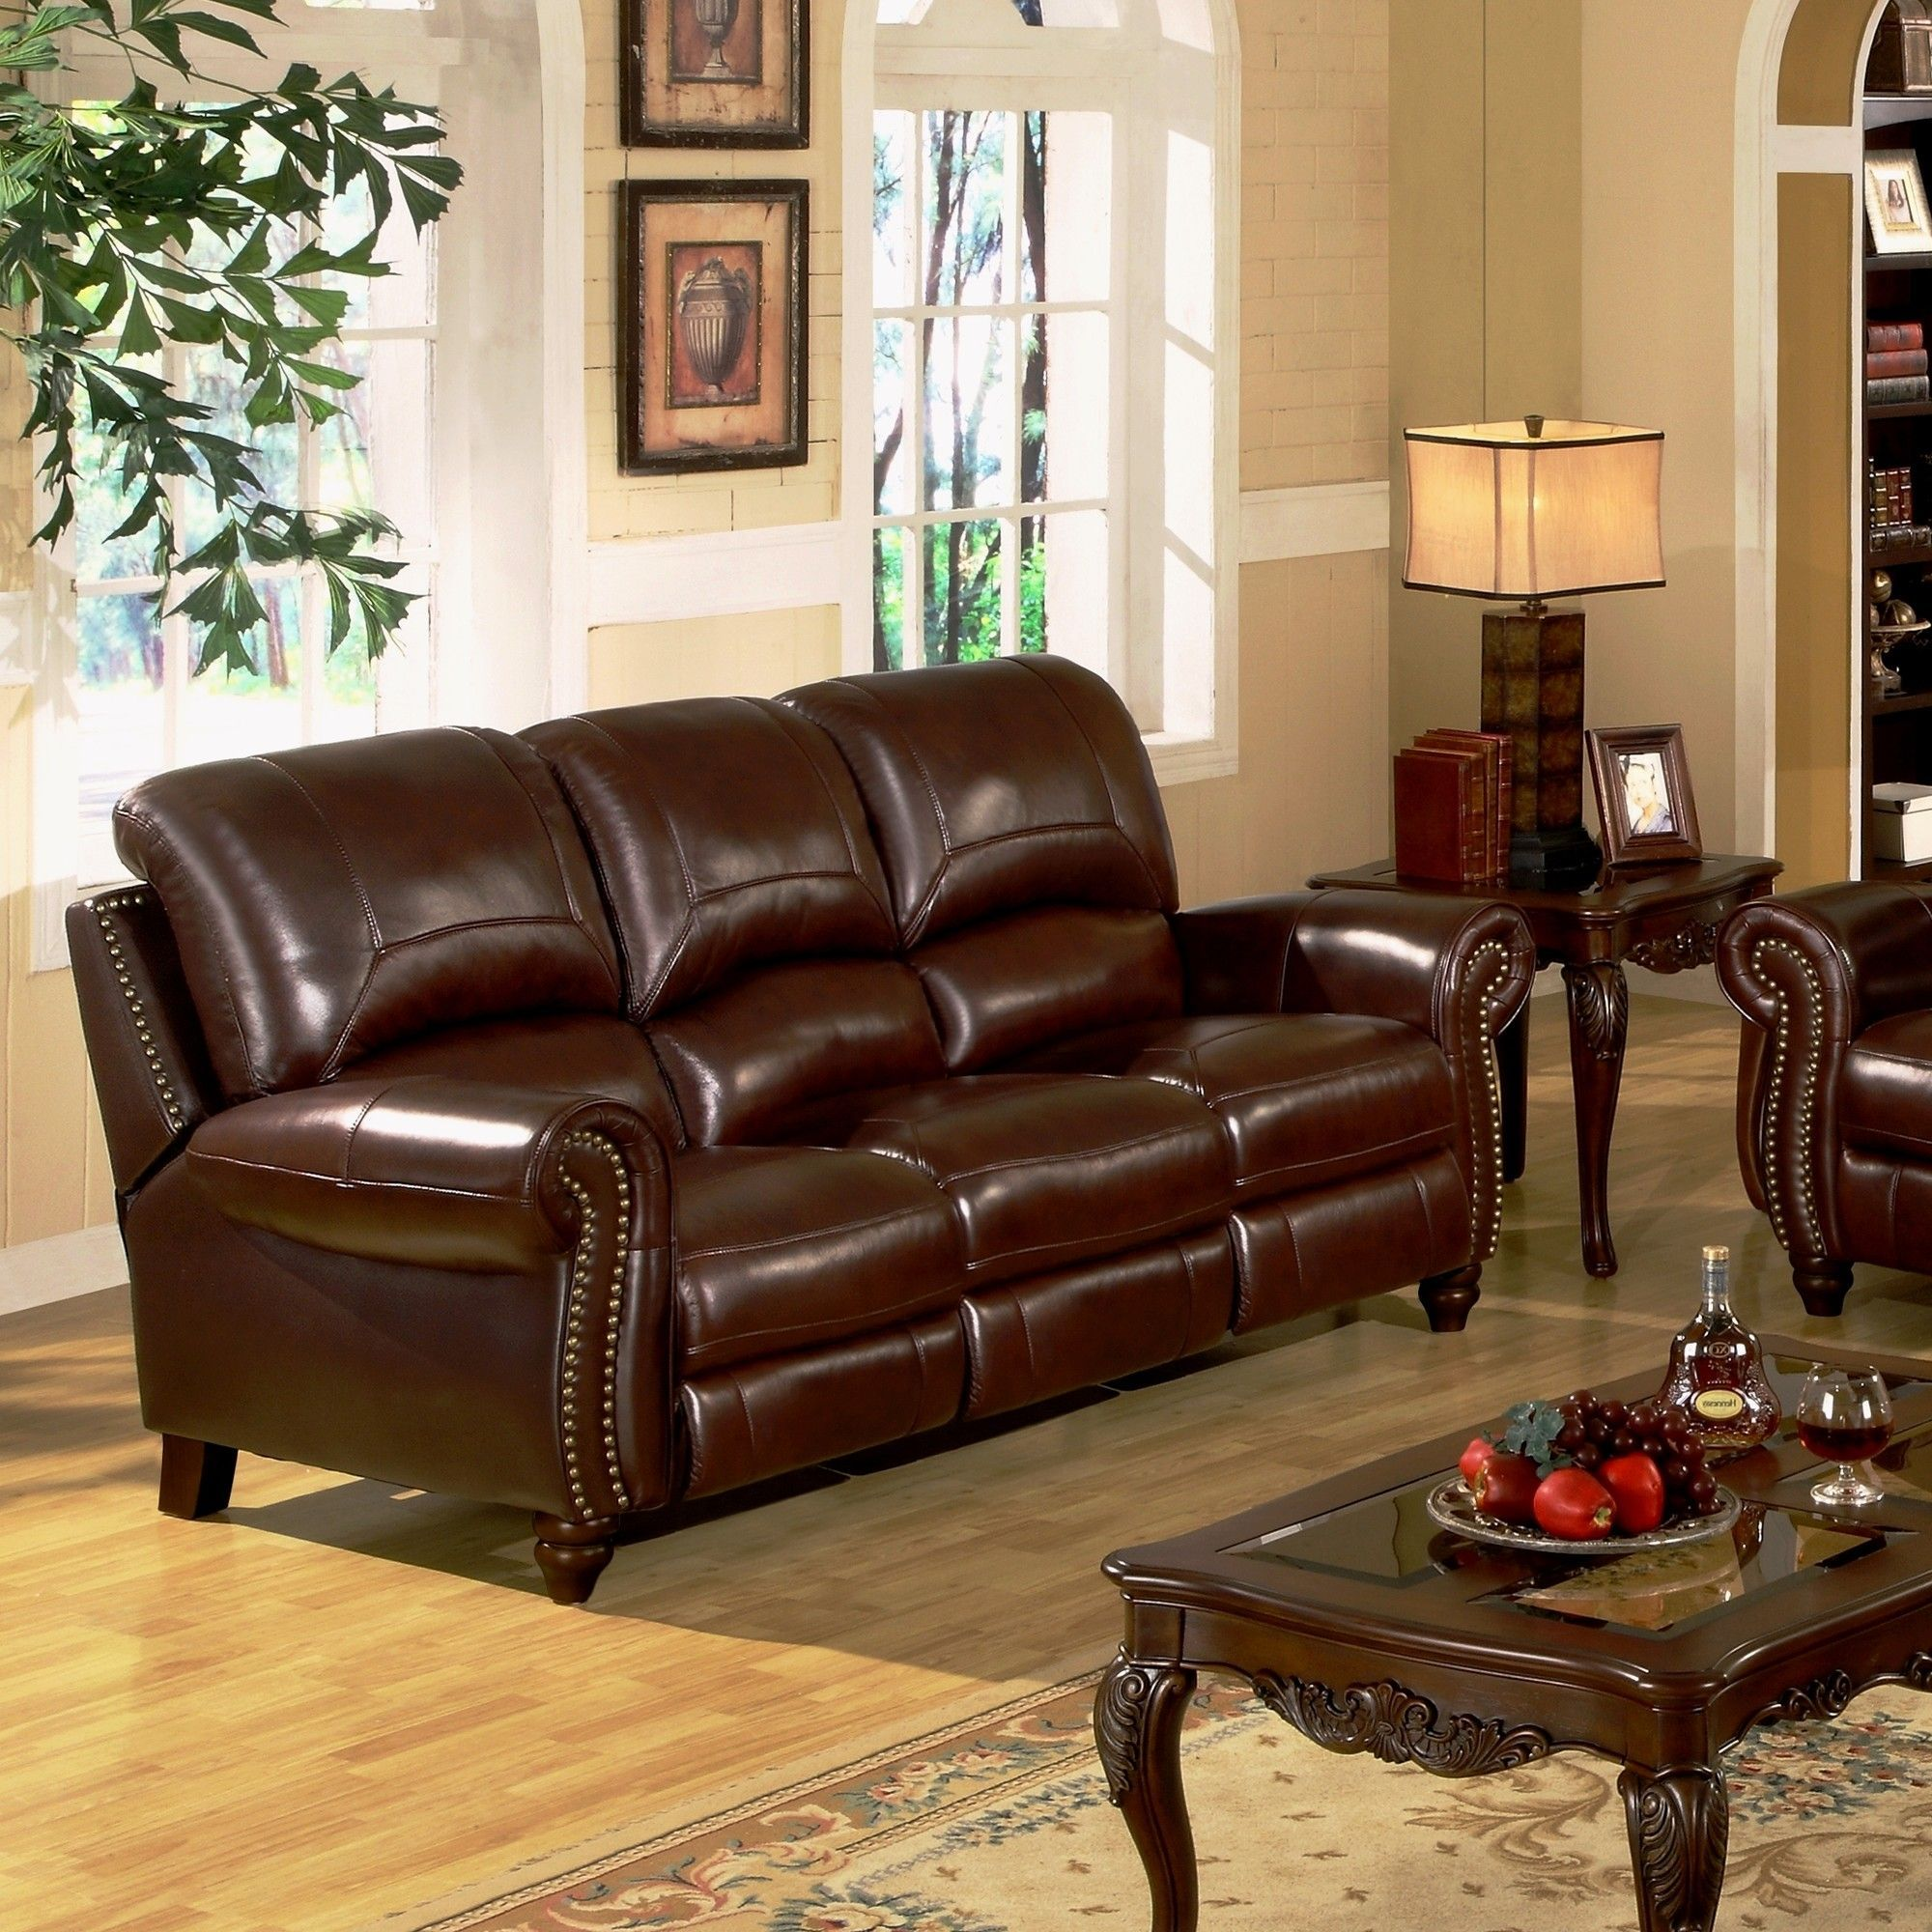 Abbyson Living Charlotte Leather Reclining Sofa U0026 Reviews | Wayfair